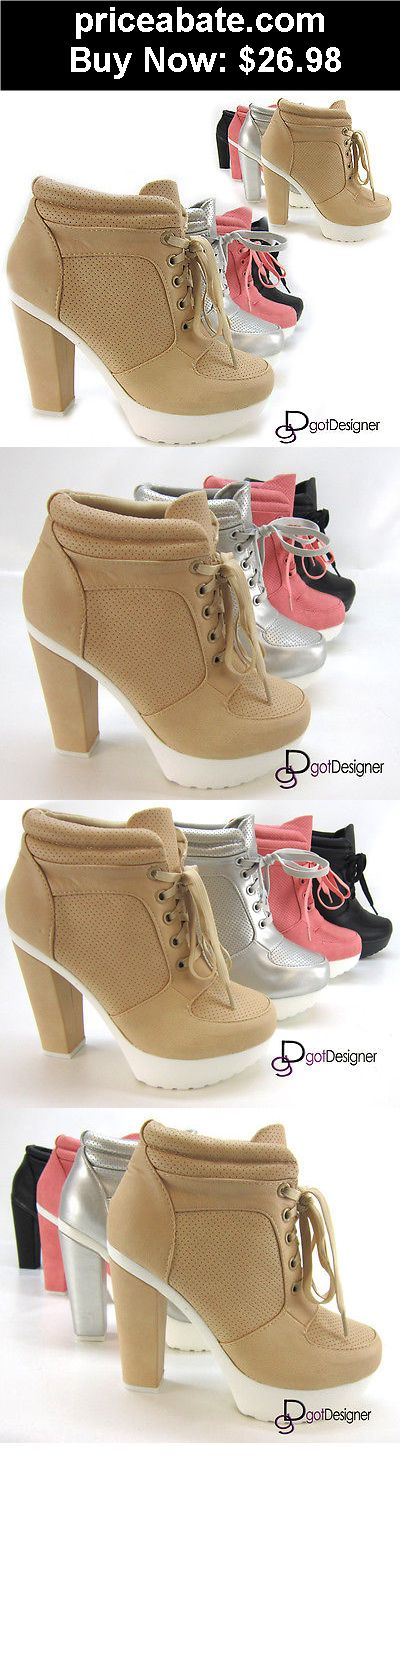 Women-Shoes: NEW Womens Fashion Shoes Ankle Boots High Heels Platforms Pumps Sexy Lace Up - BUY IT NOW ONLY $26.98